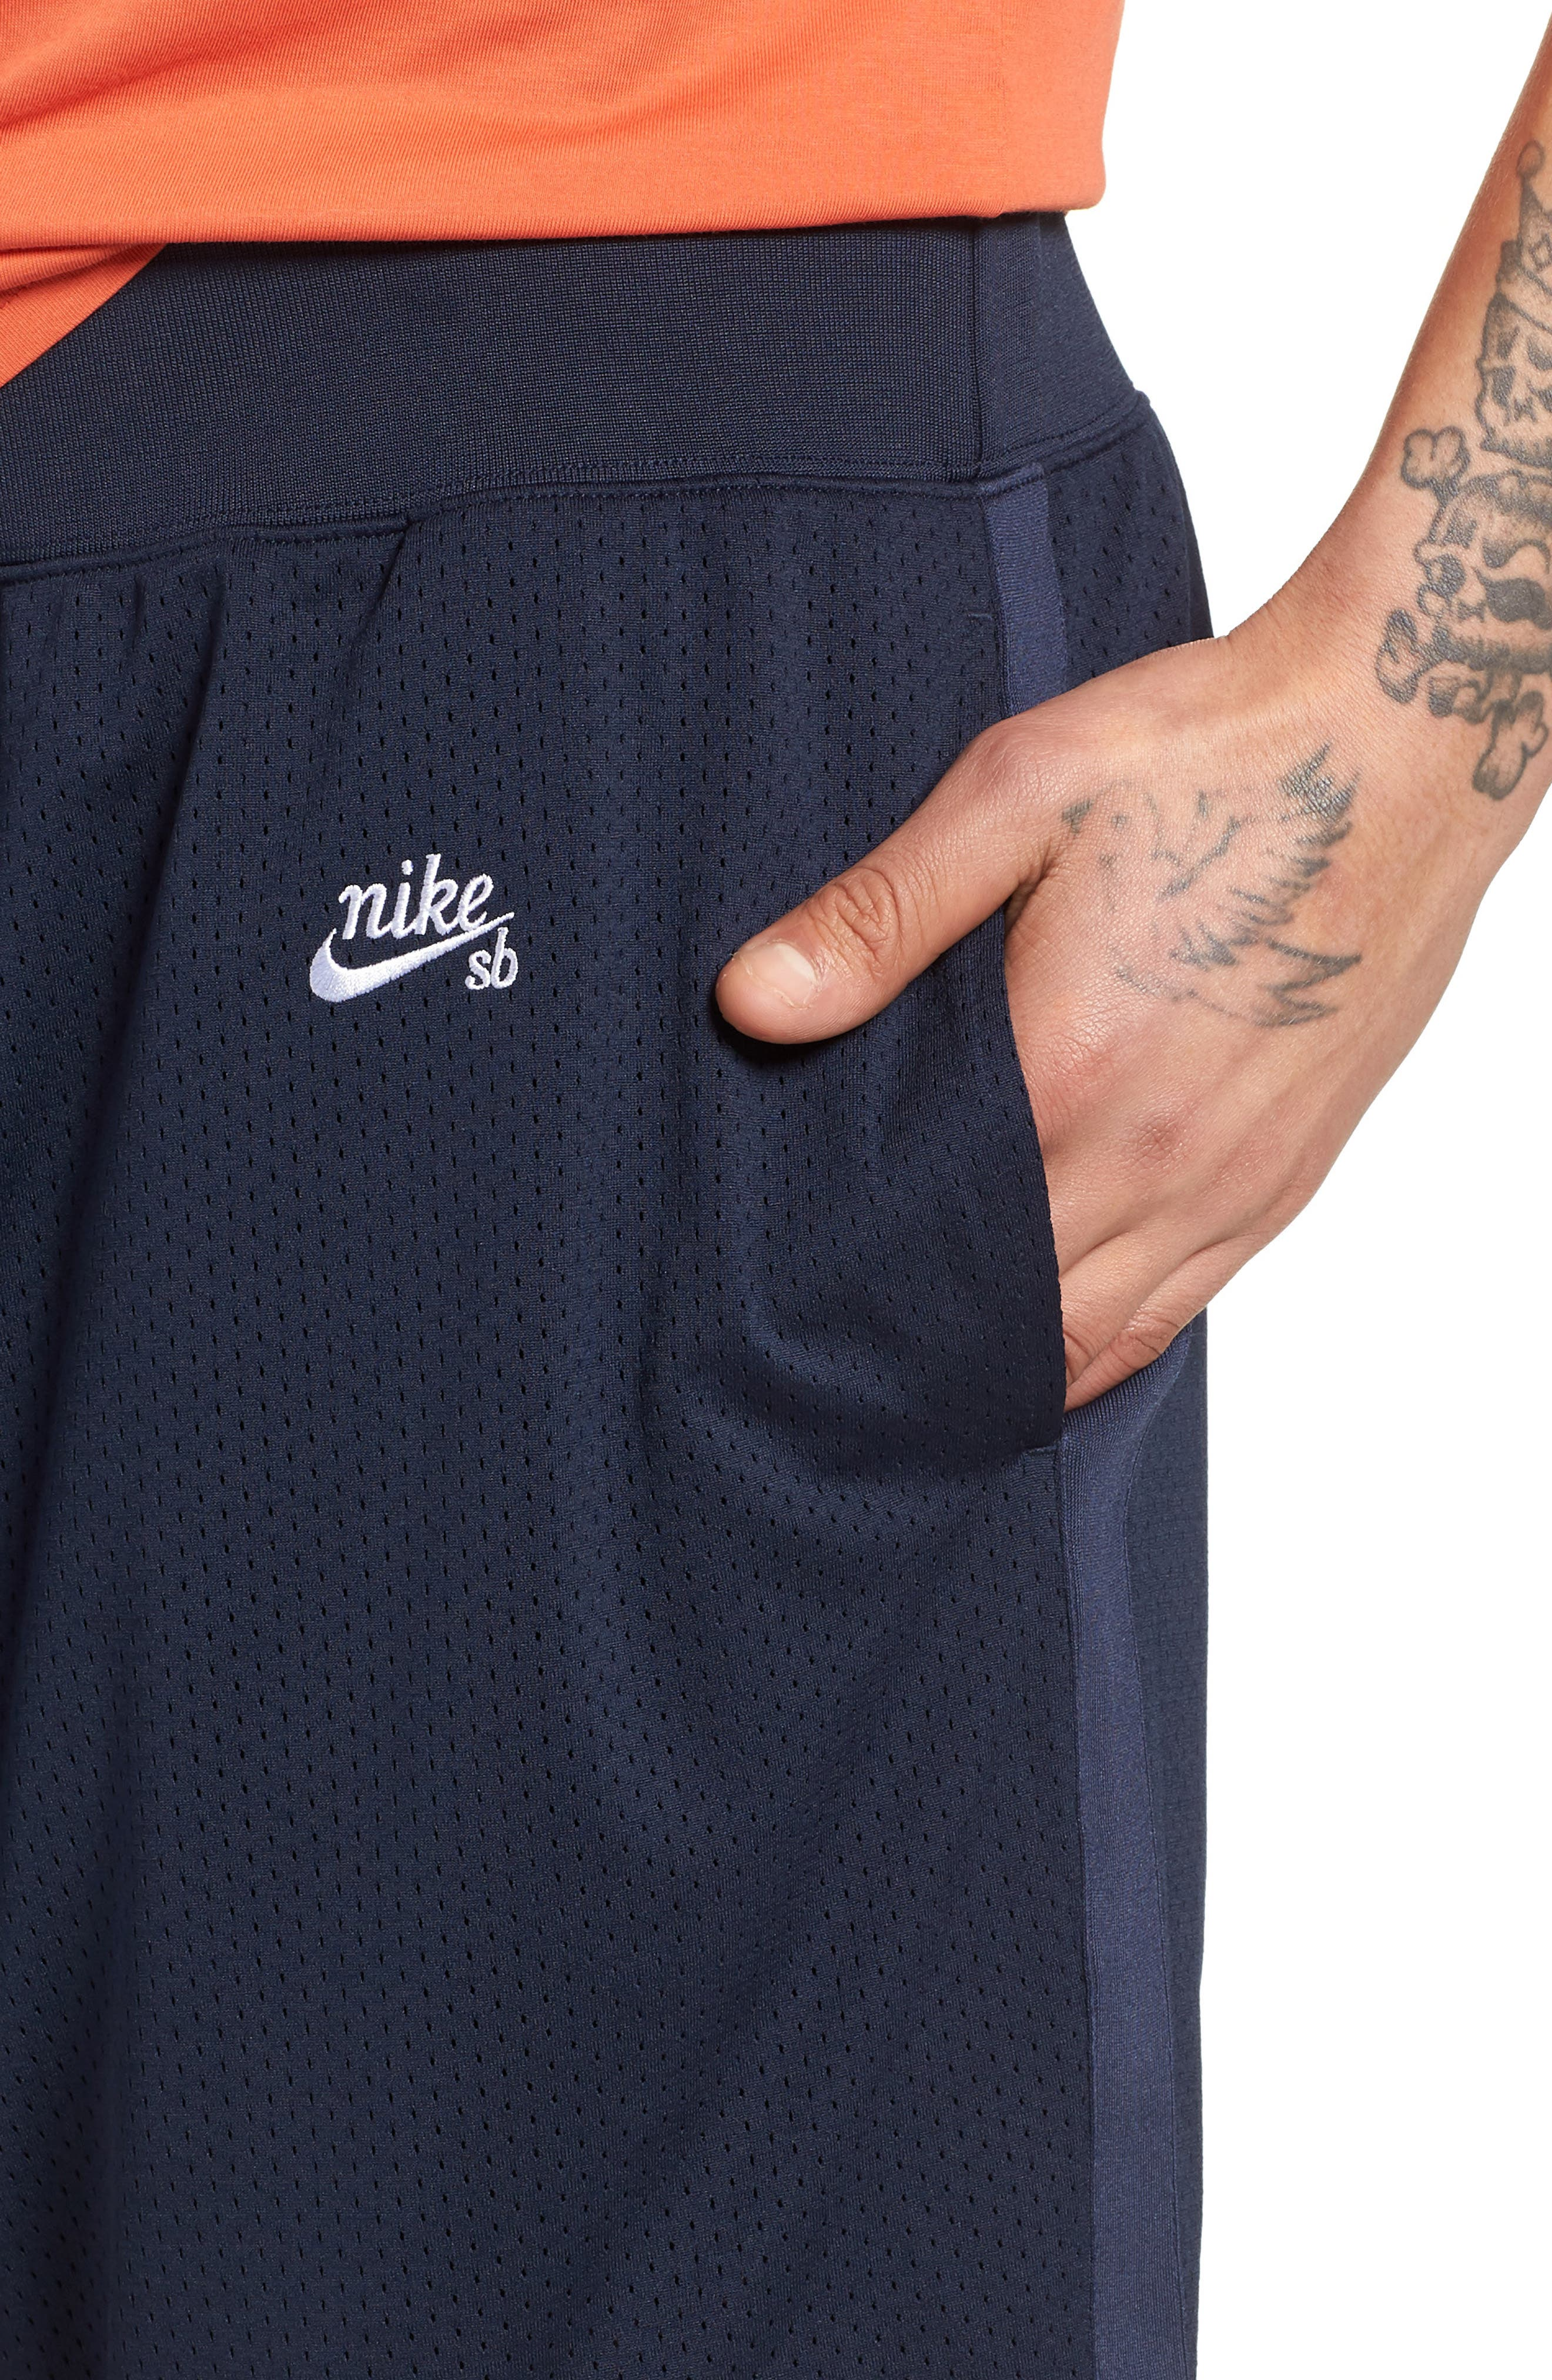 SB Dry Heritage Court Shorts,                             Alternate thumbnail 4, color,                             OBSIDIAN/ WHITE